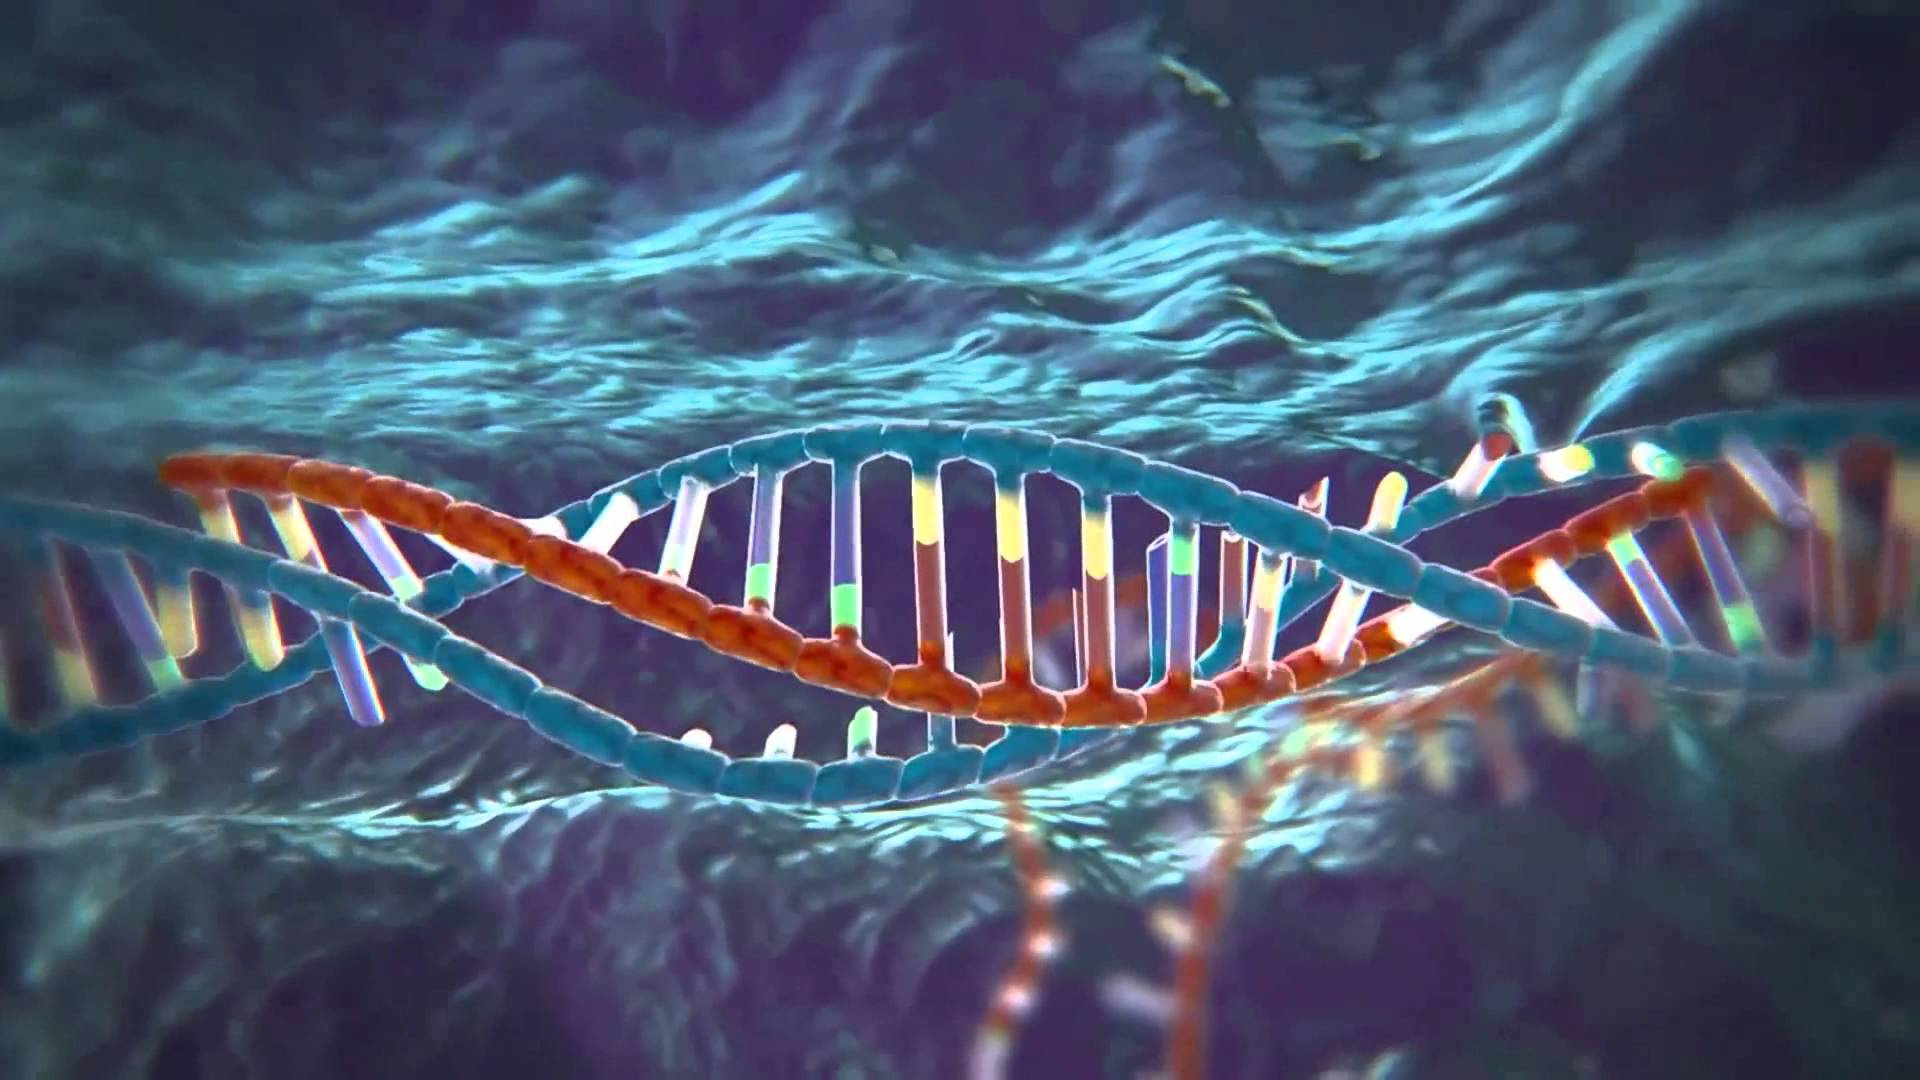 A dramatic image shows a DNA double helix against a dark background full of waves drawn from microscopic photography